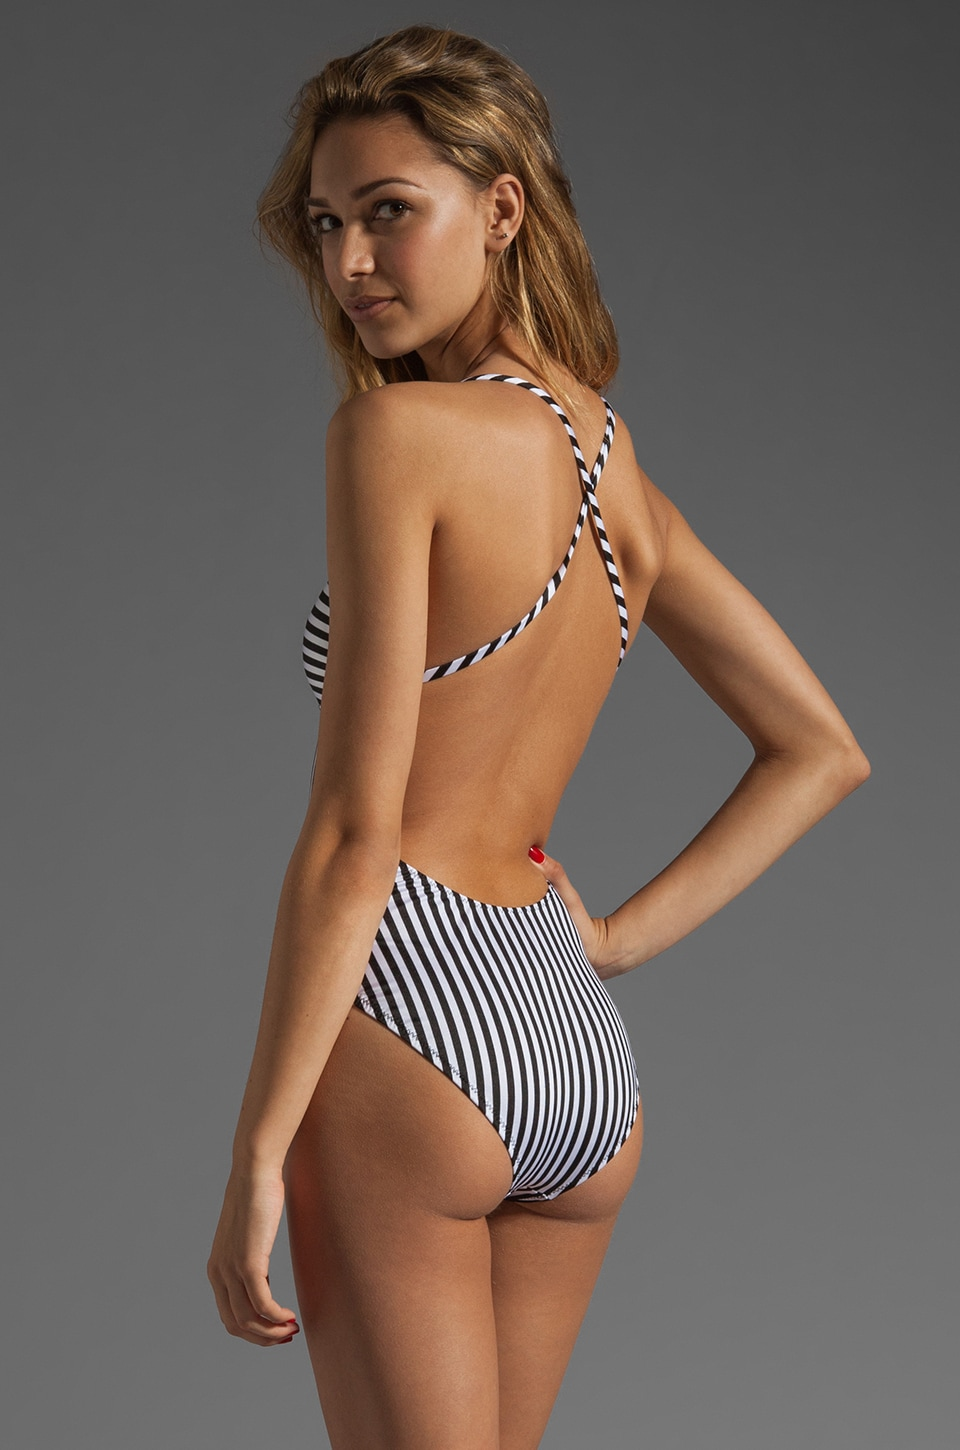 Norma Kamali Shane One-Piece in Black/White Combo